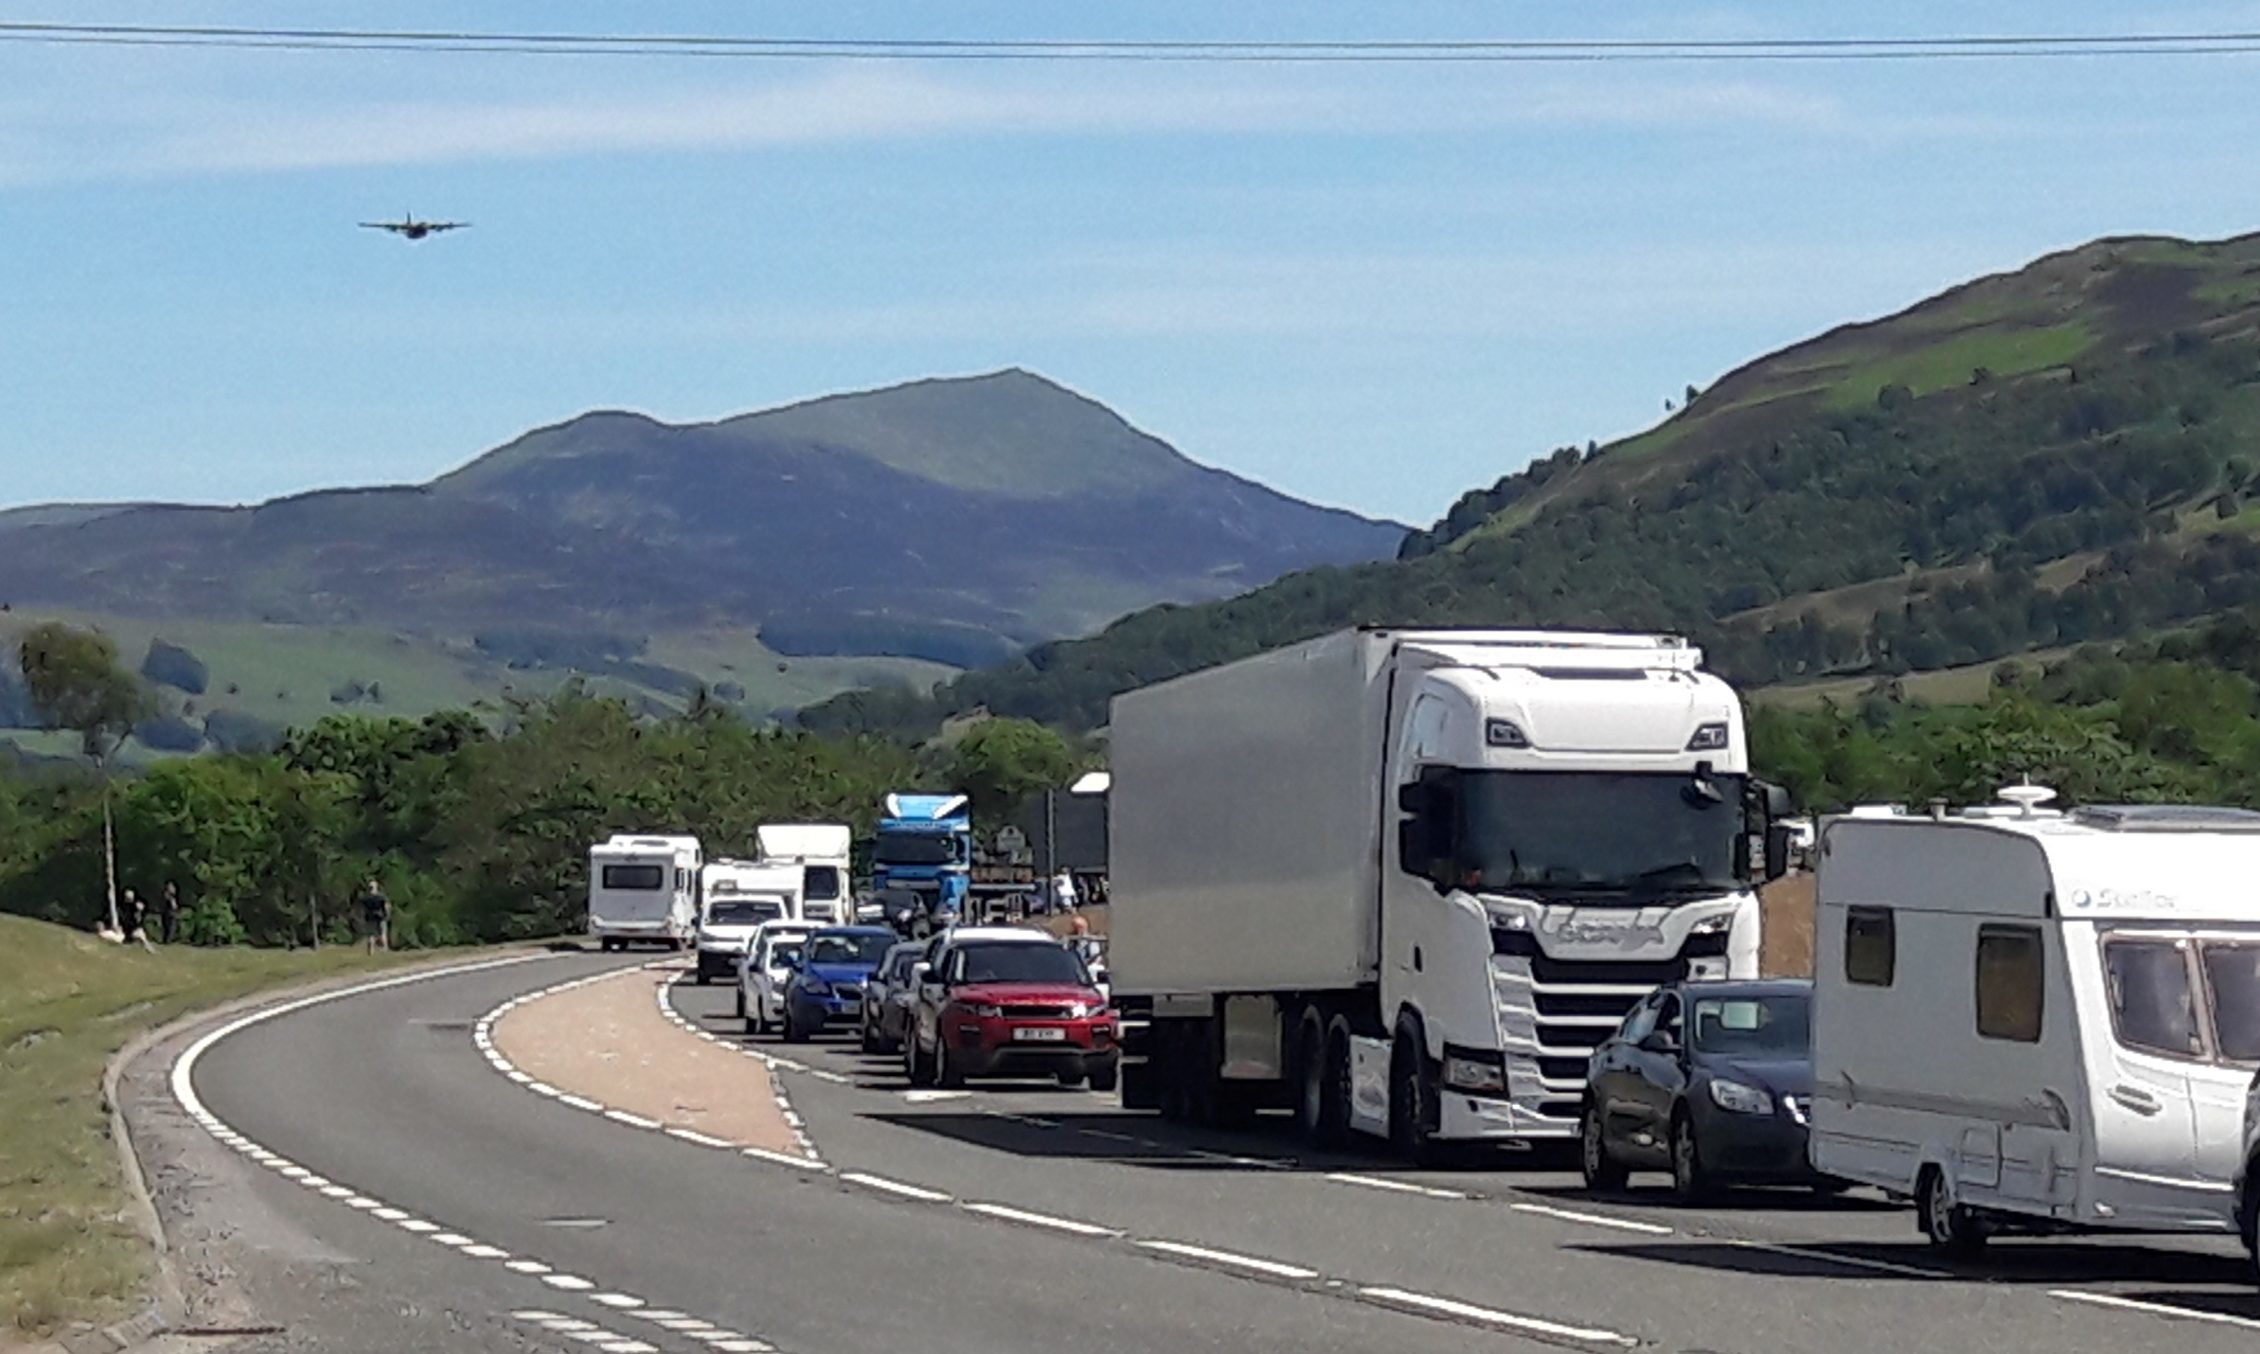 Traffic building up following a previous incident on the A9 near House of Bruar.